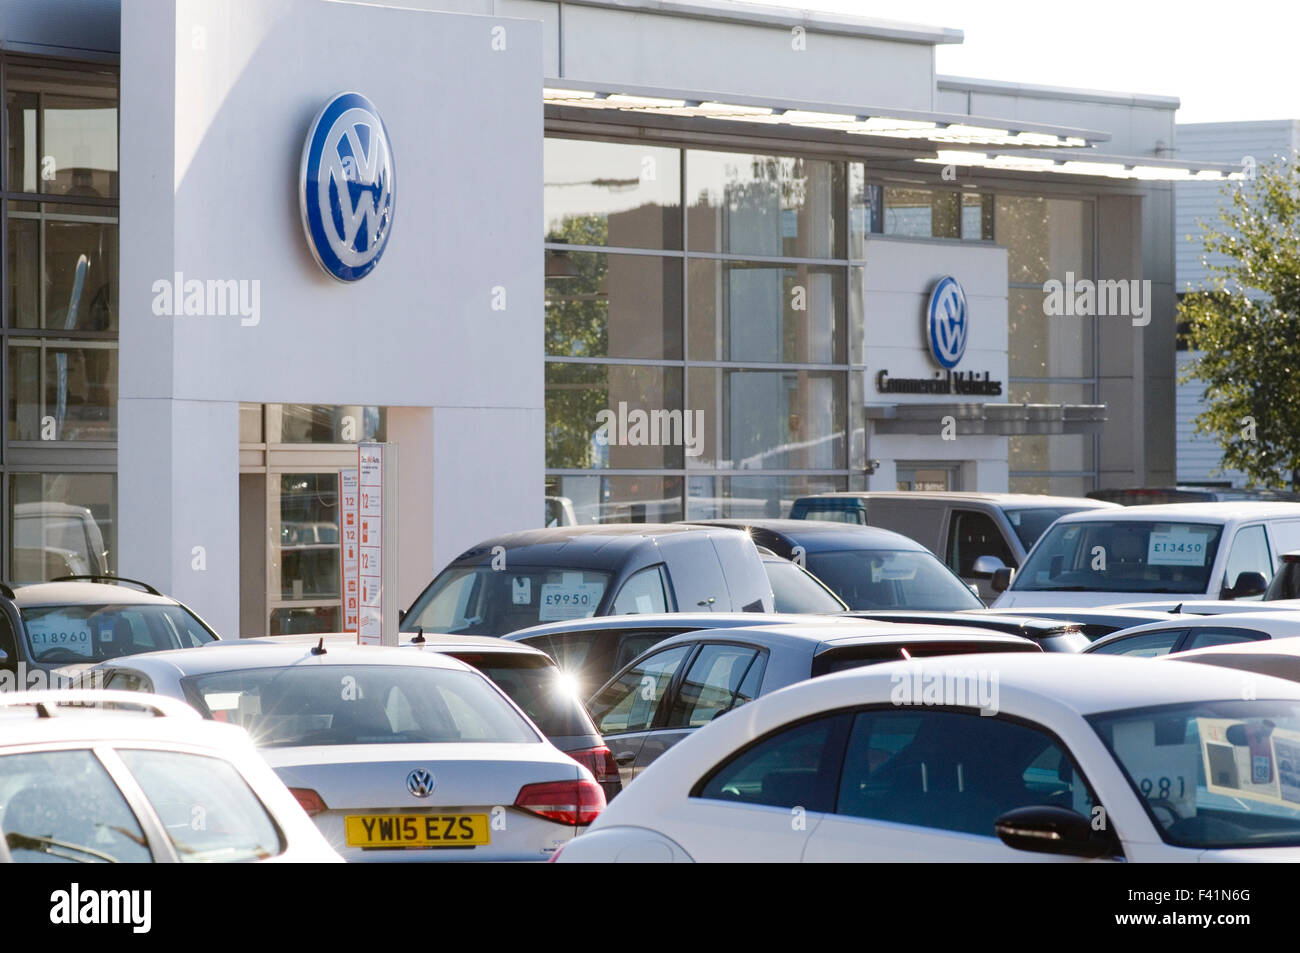 vw volkswagen VAG dealership dealerships garage showroom showrooms show room rooms franchised dealer dealers car - Stock Image